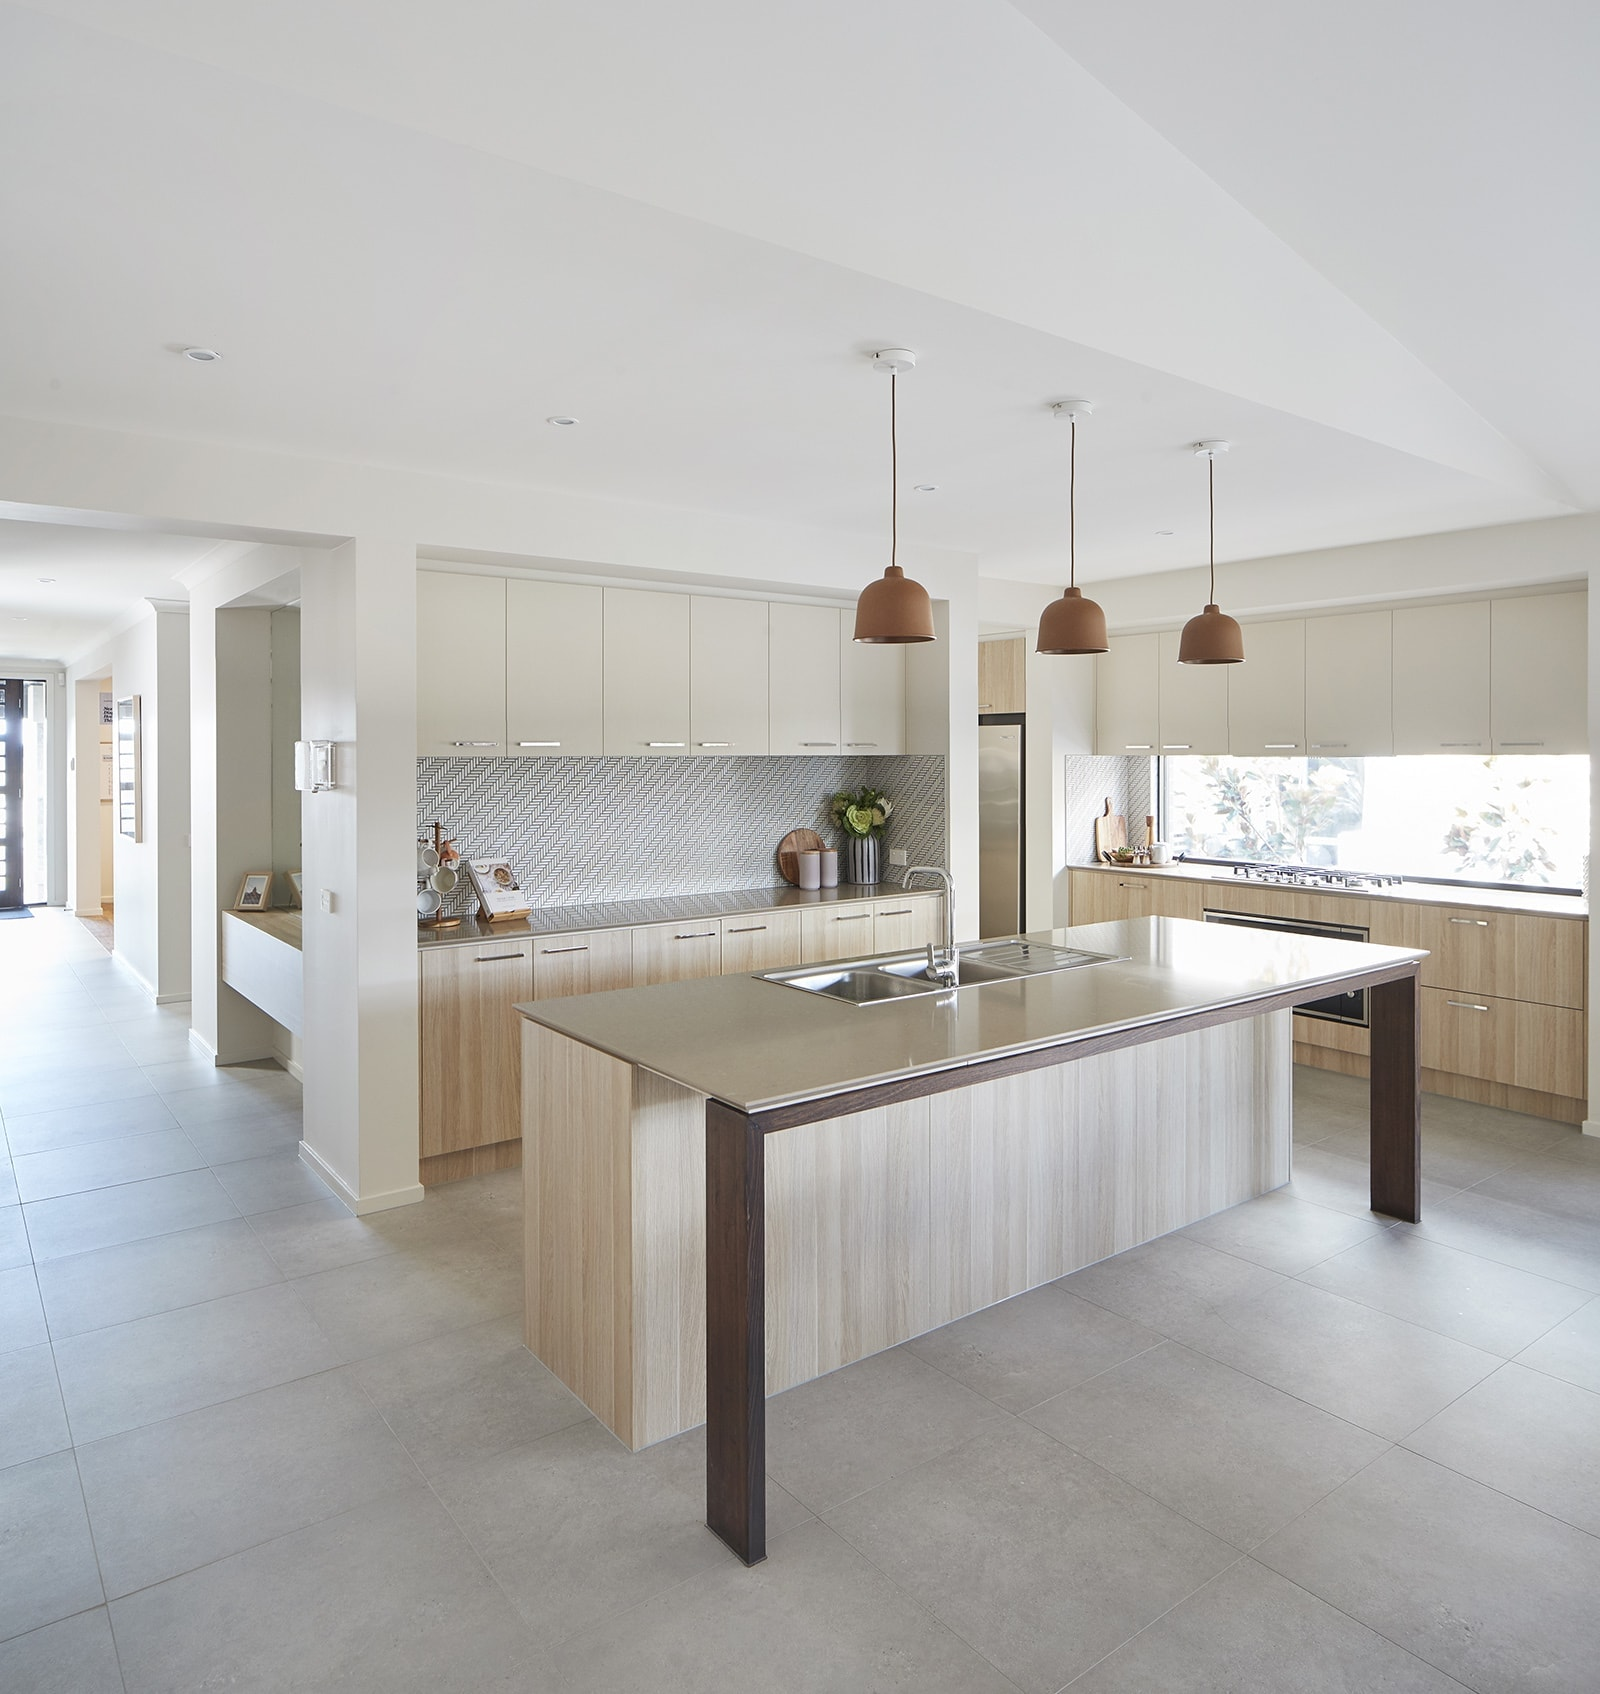 energy efficient home designs kitchen by metricon homes with terracotta pendants